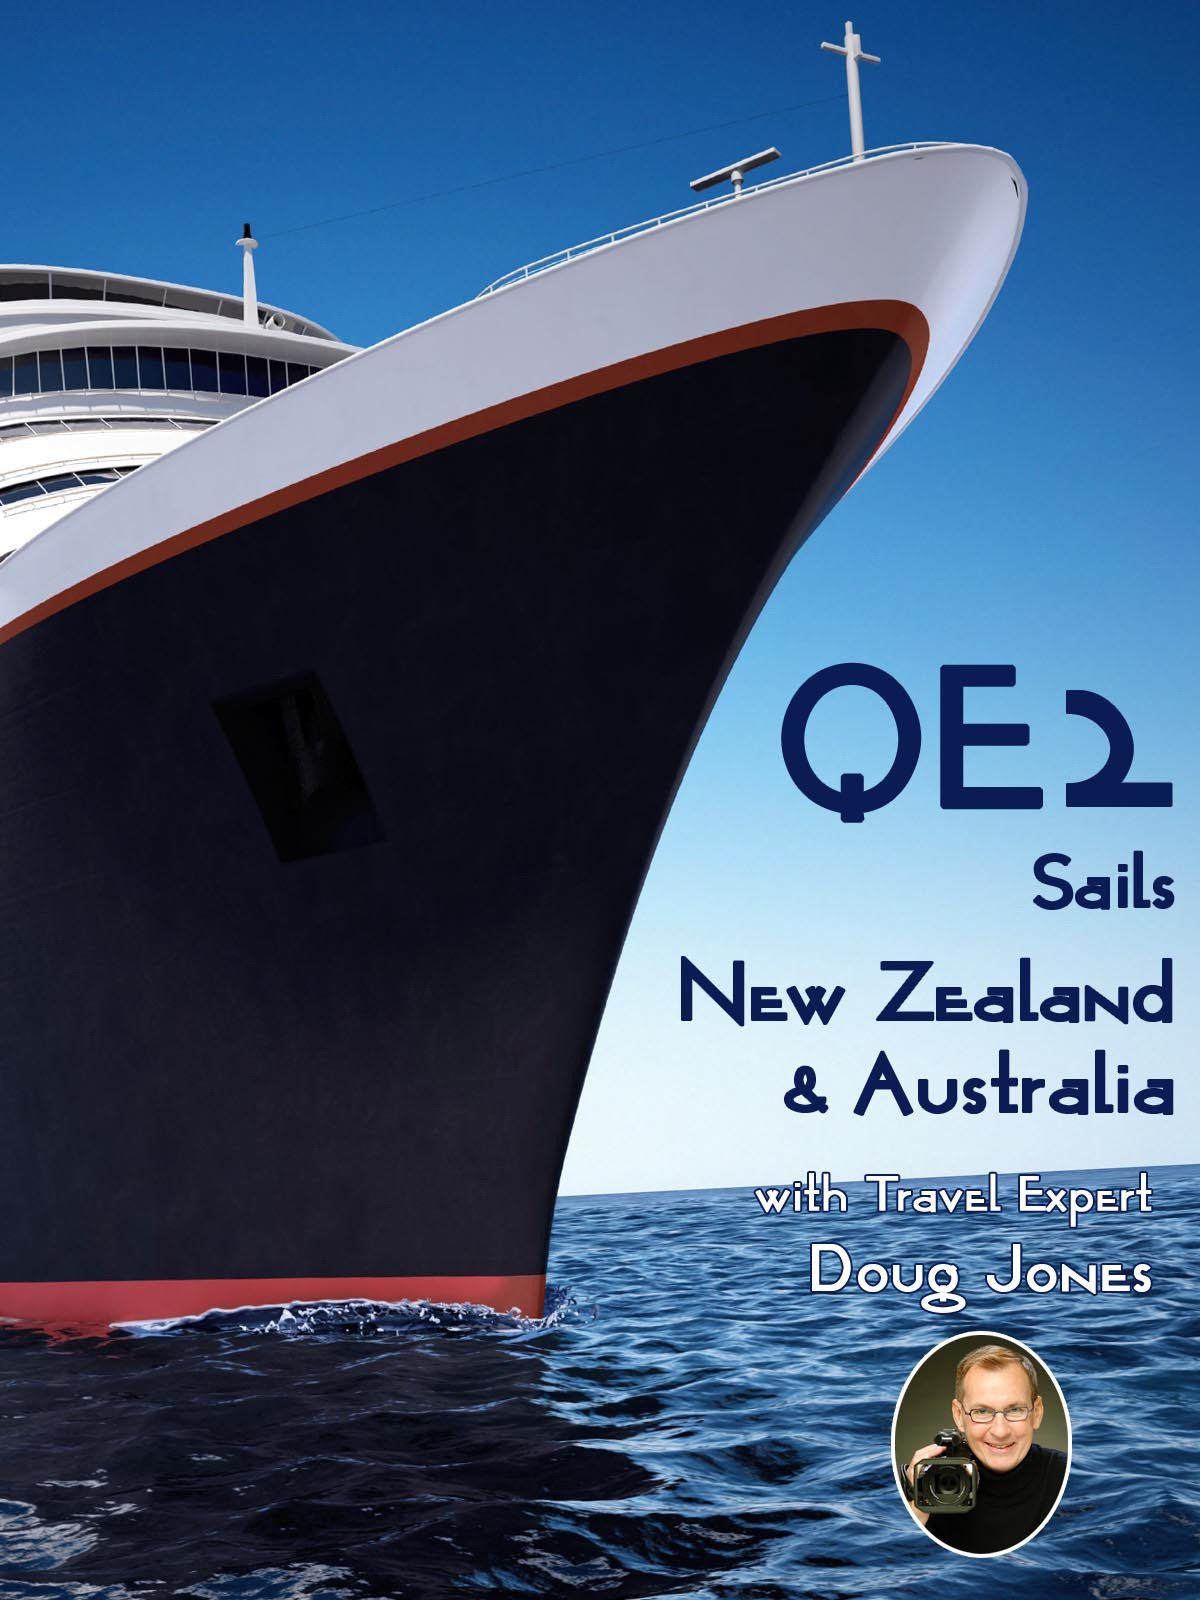 QE 2 Sails New Zealand & Australia With Travel Expert Doug Jones